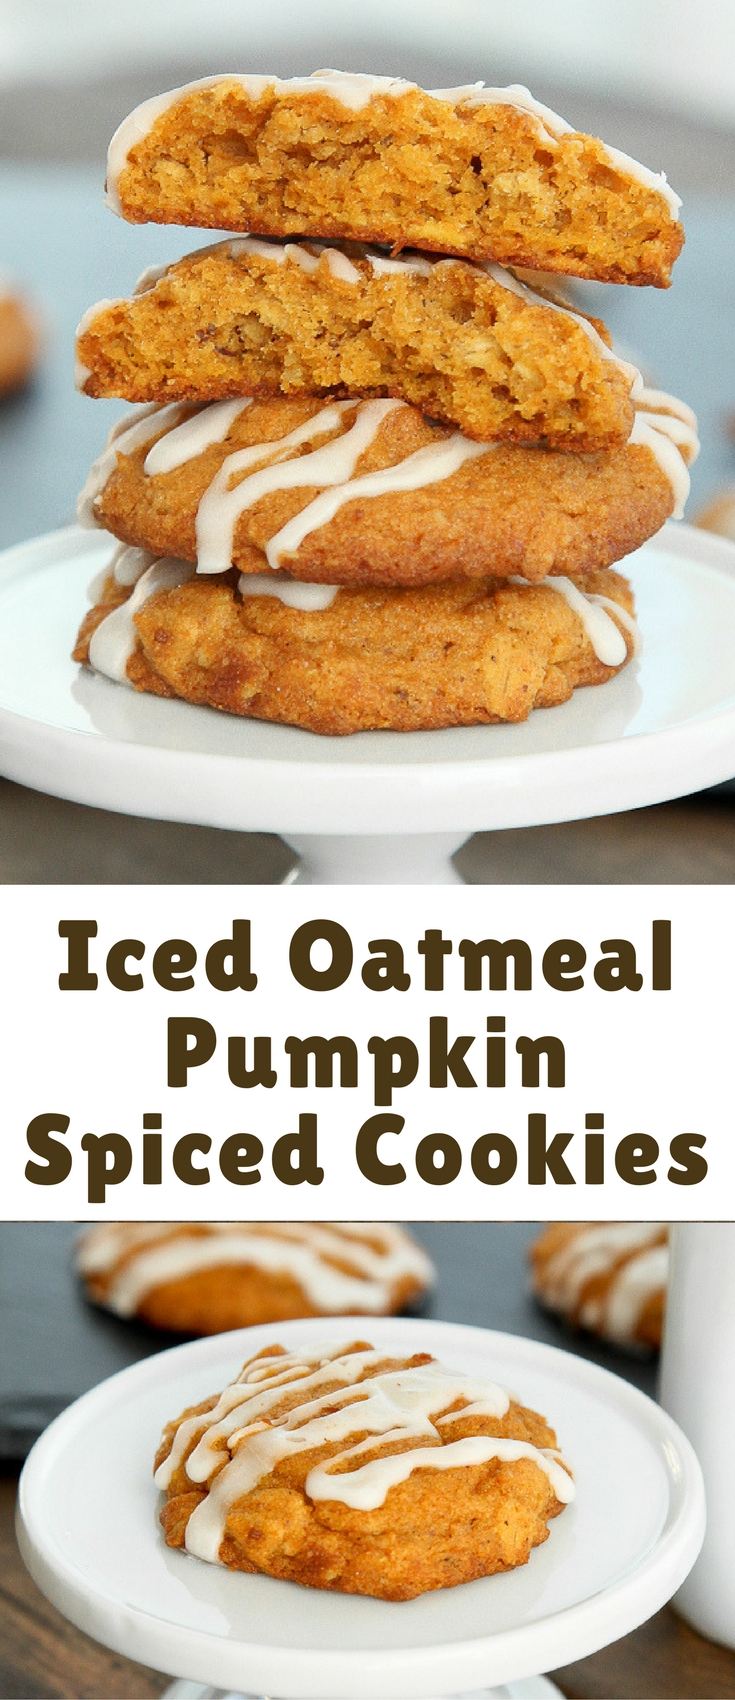 Iced Oatmeal Pumpkin Spiced Cookies - Blogger Bests